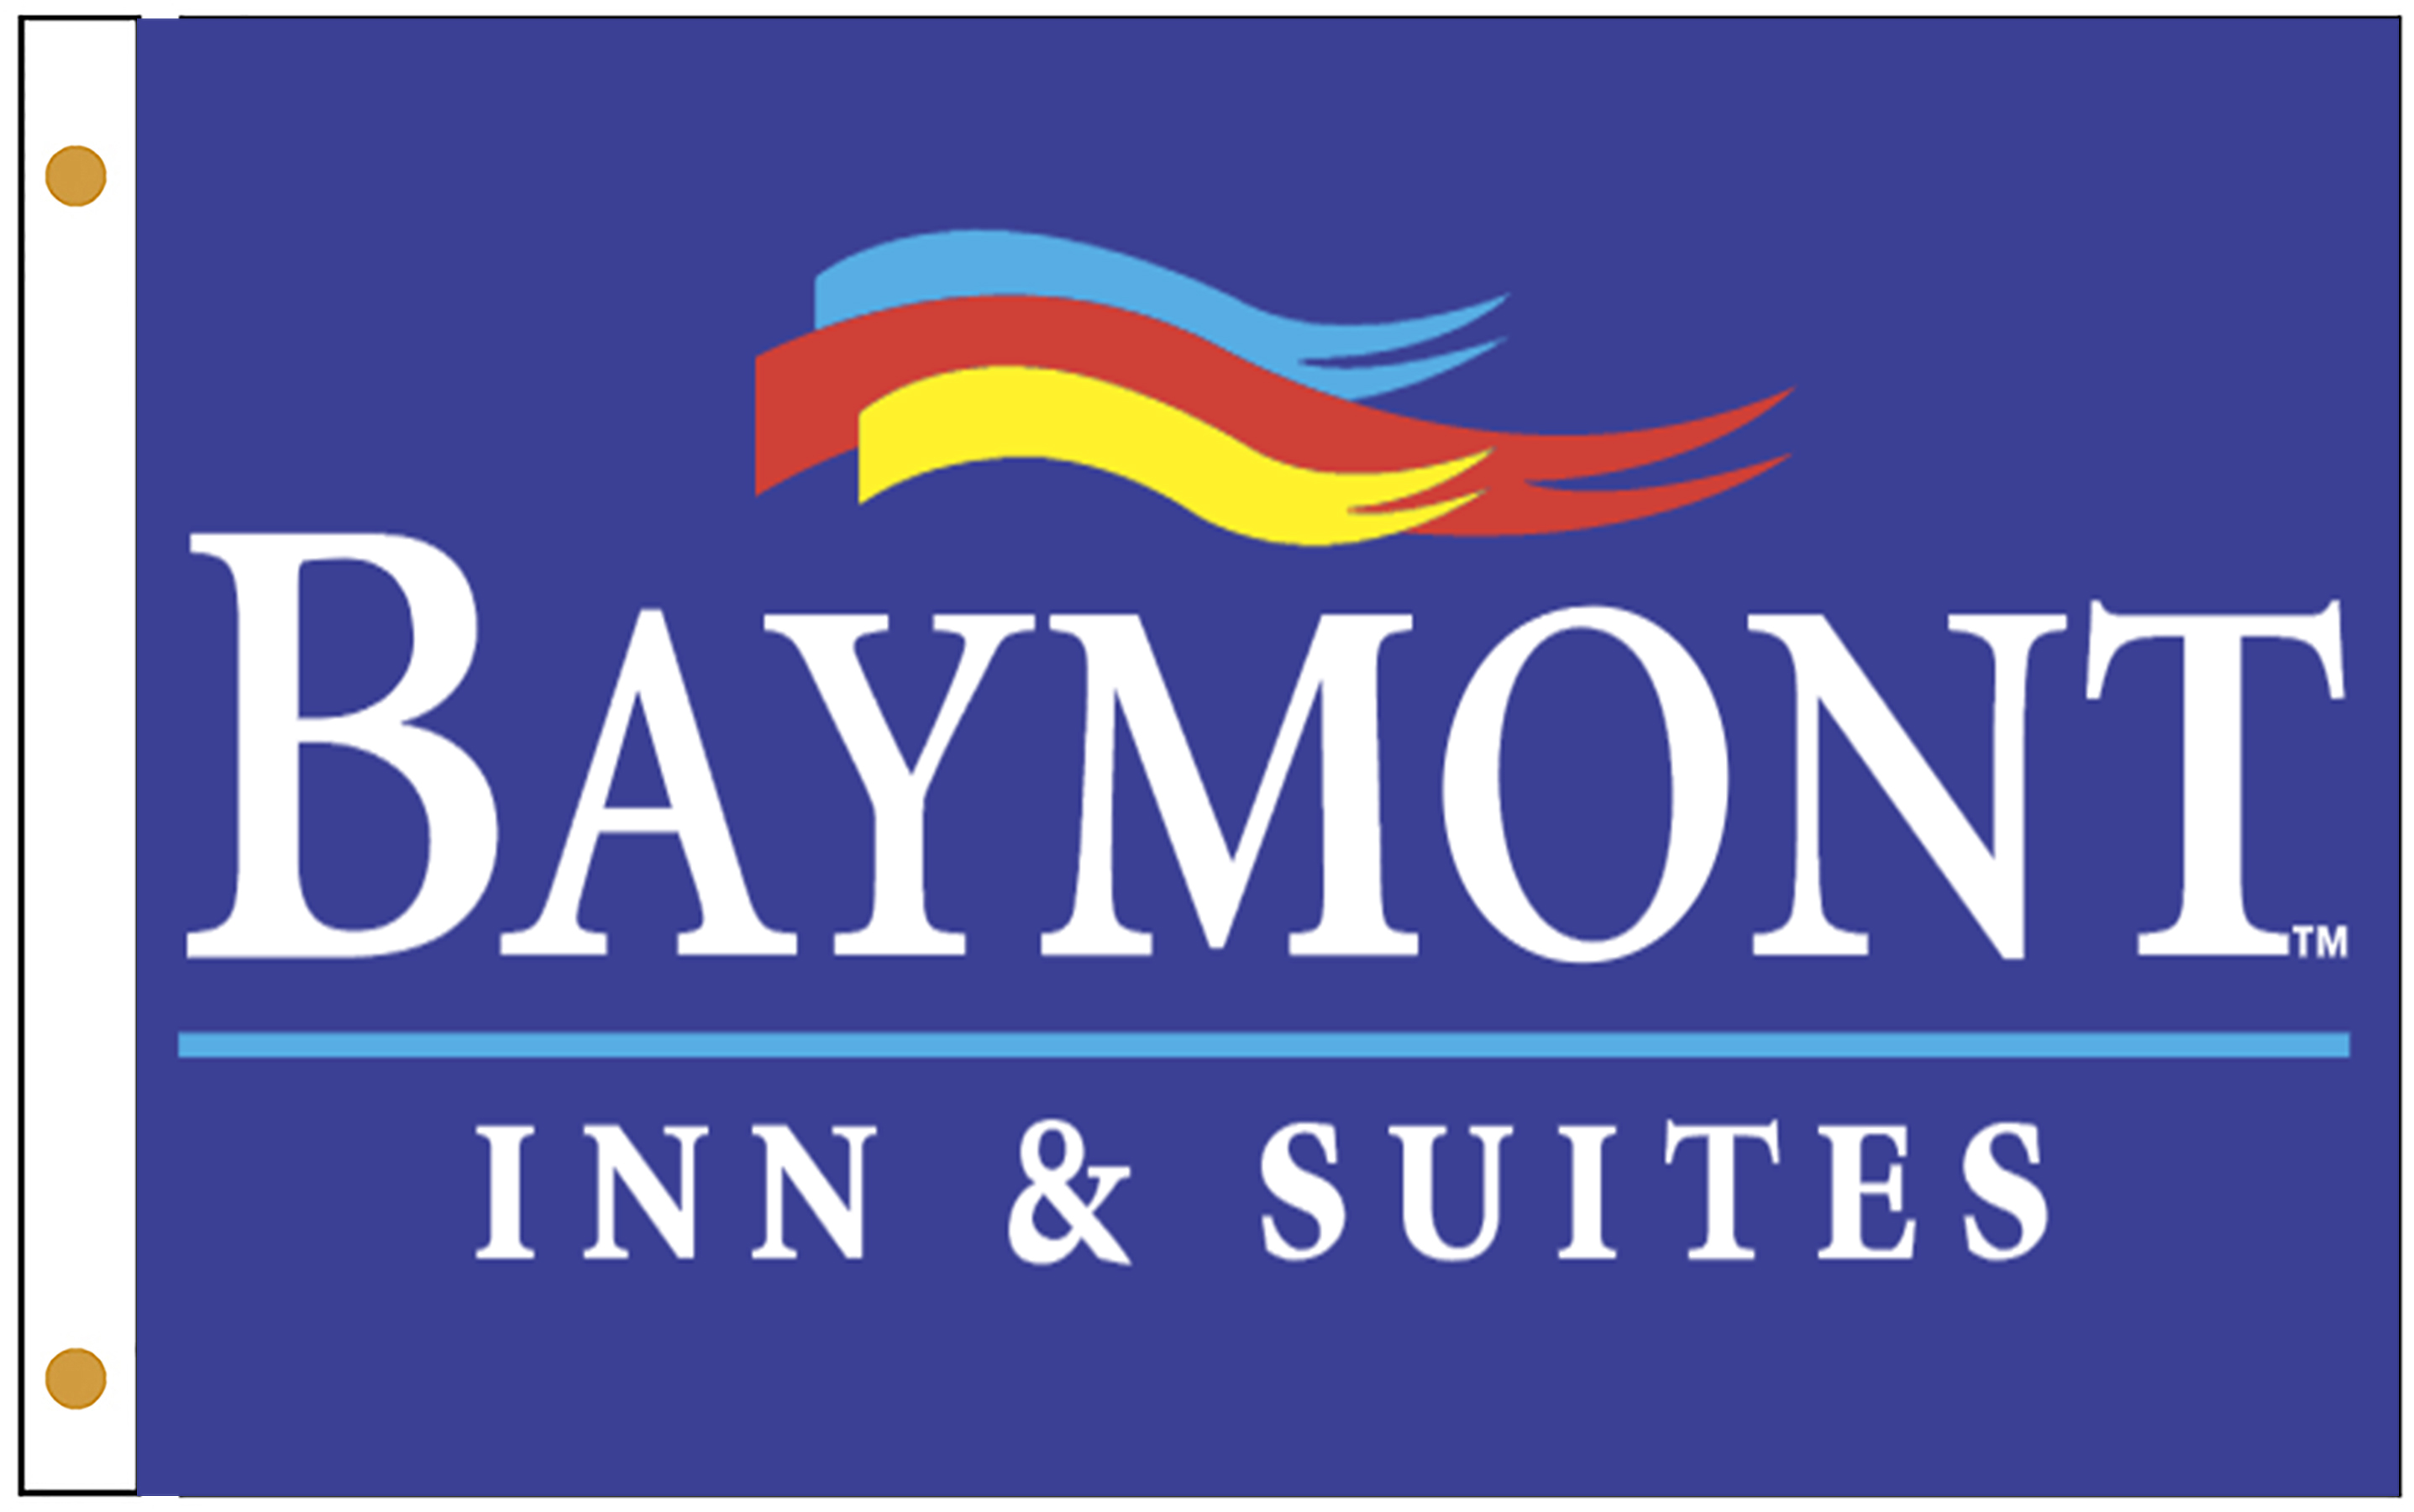 Baymont Hotel Flags